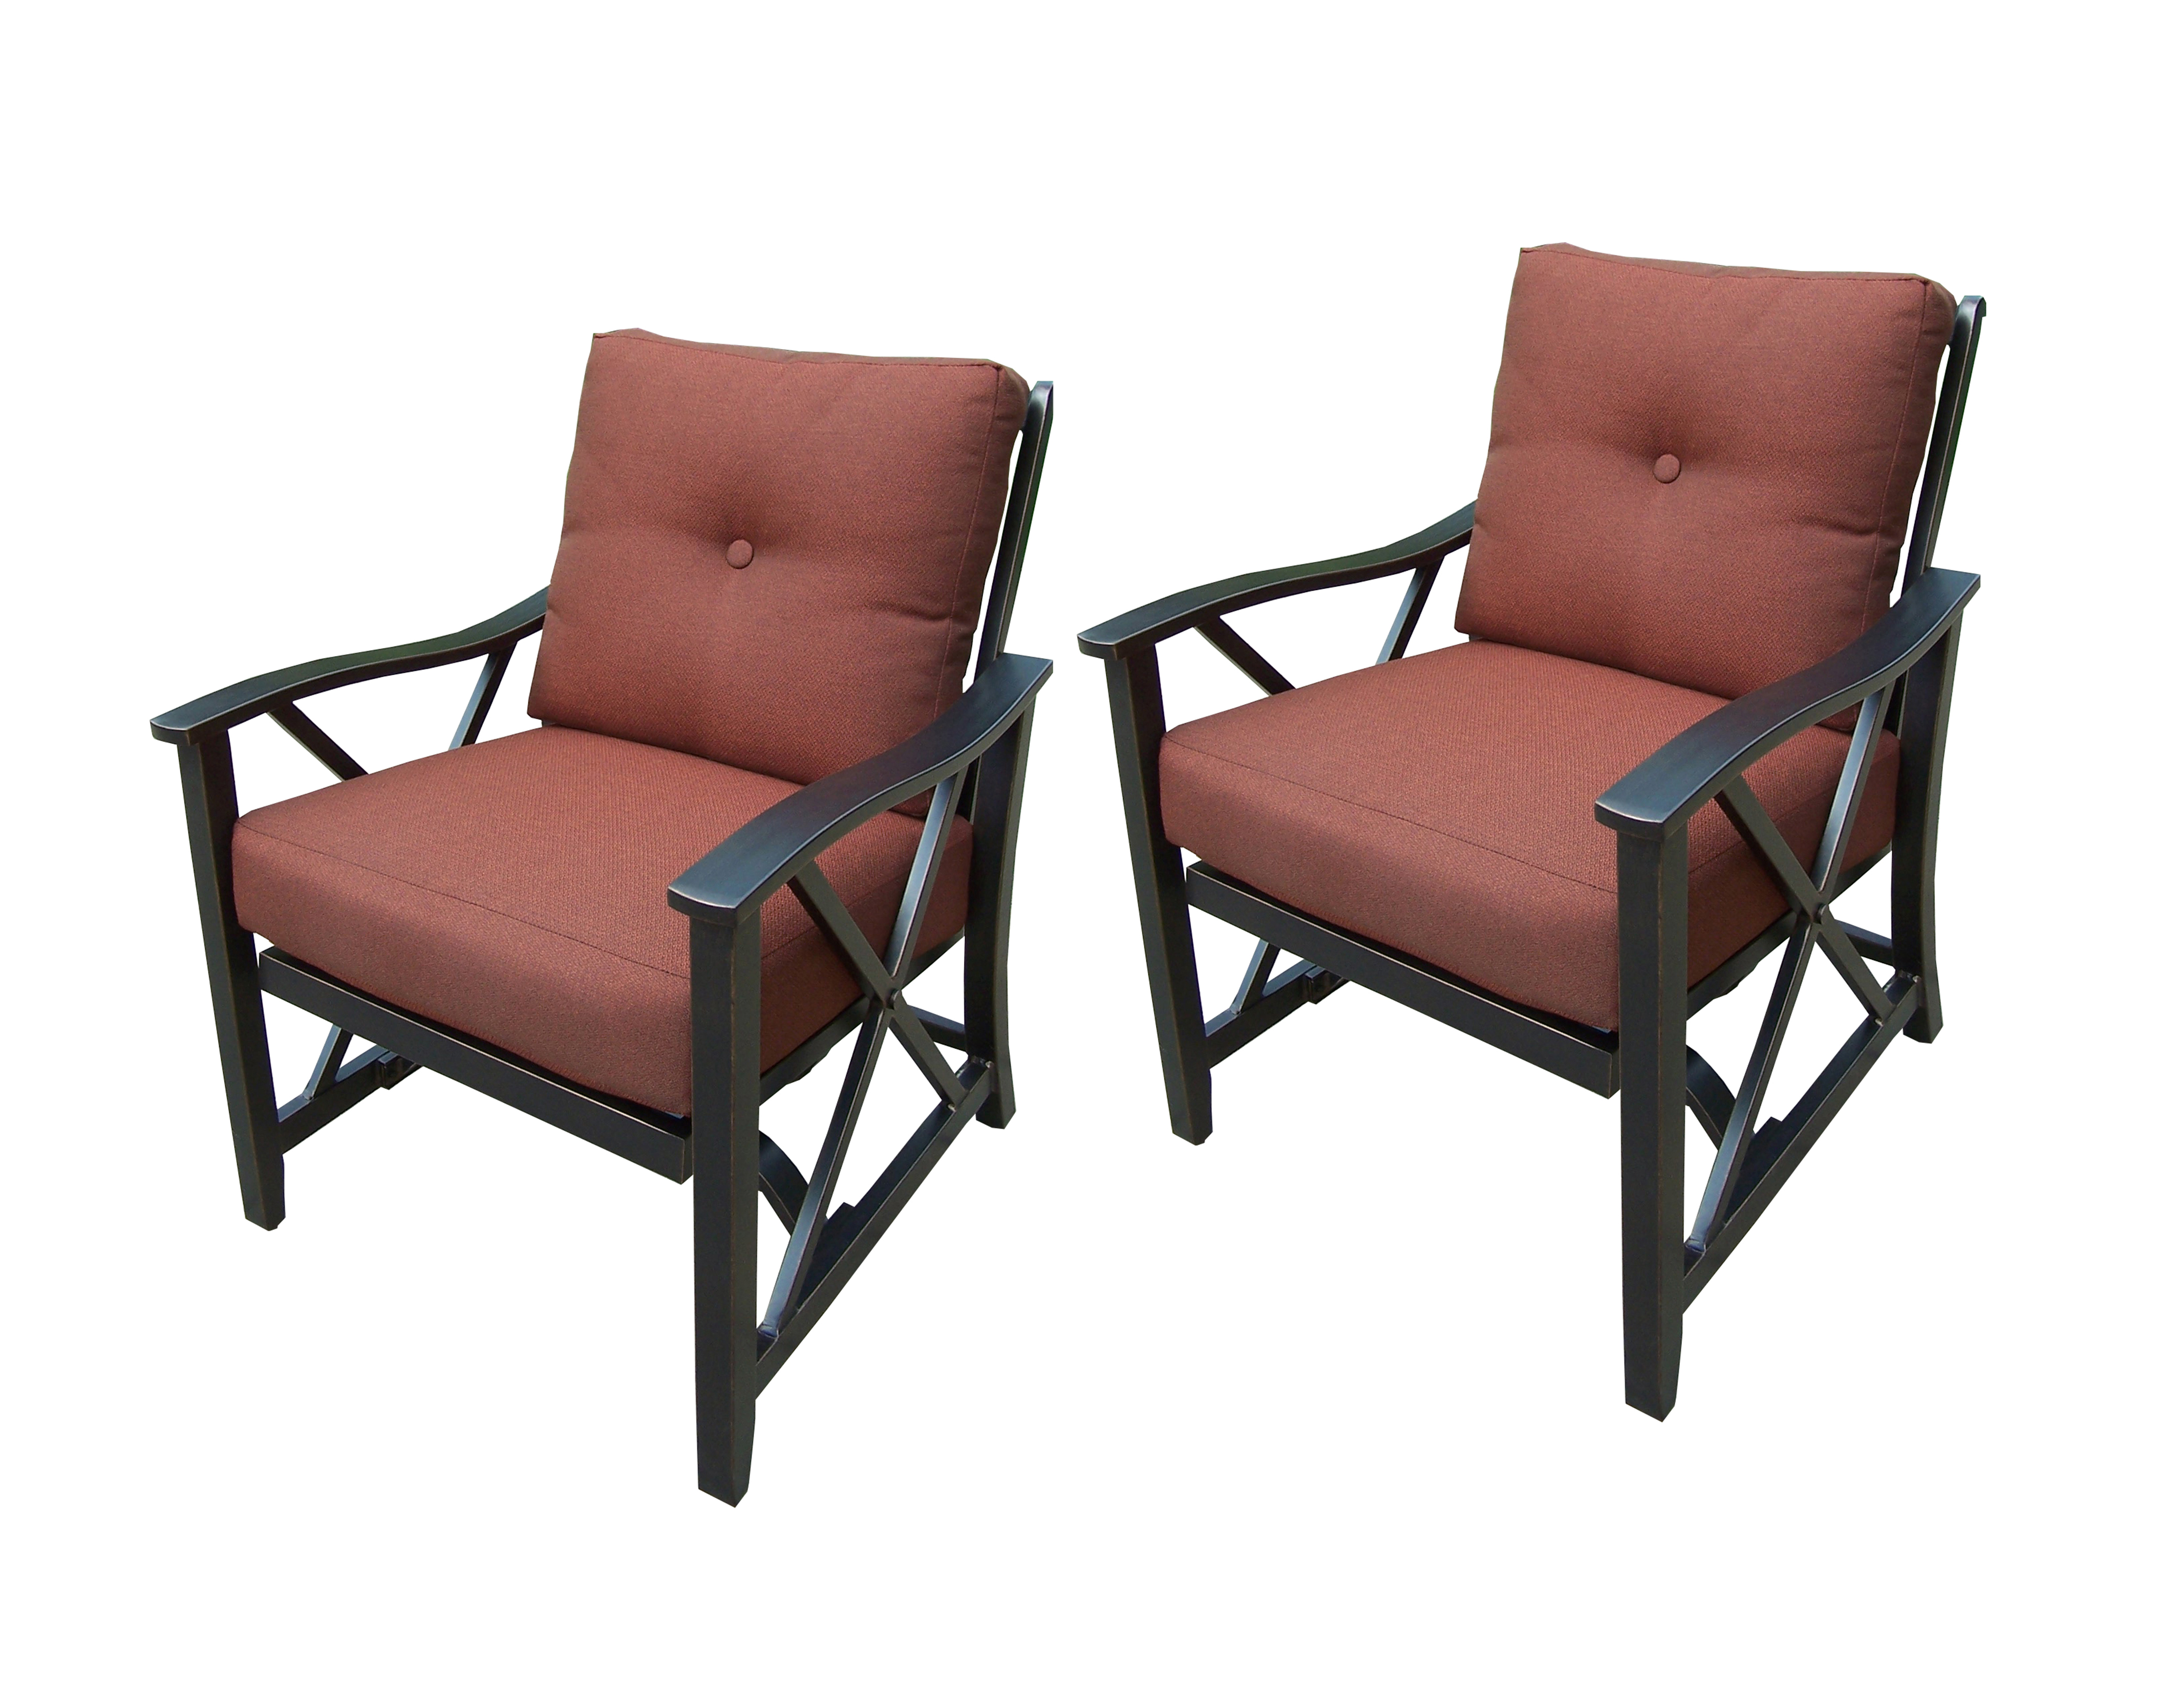 thick chair cushions lowes black outdoor rocking oakland living deep seat aluminum framed chairs w